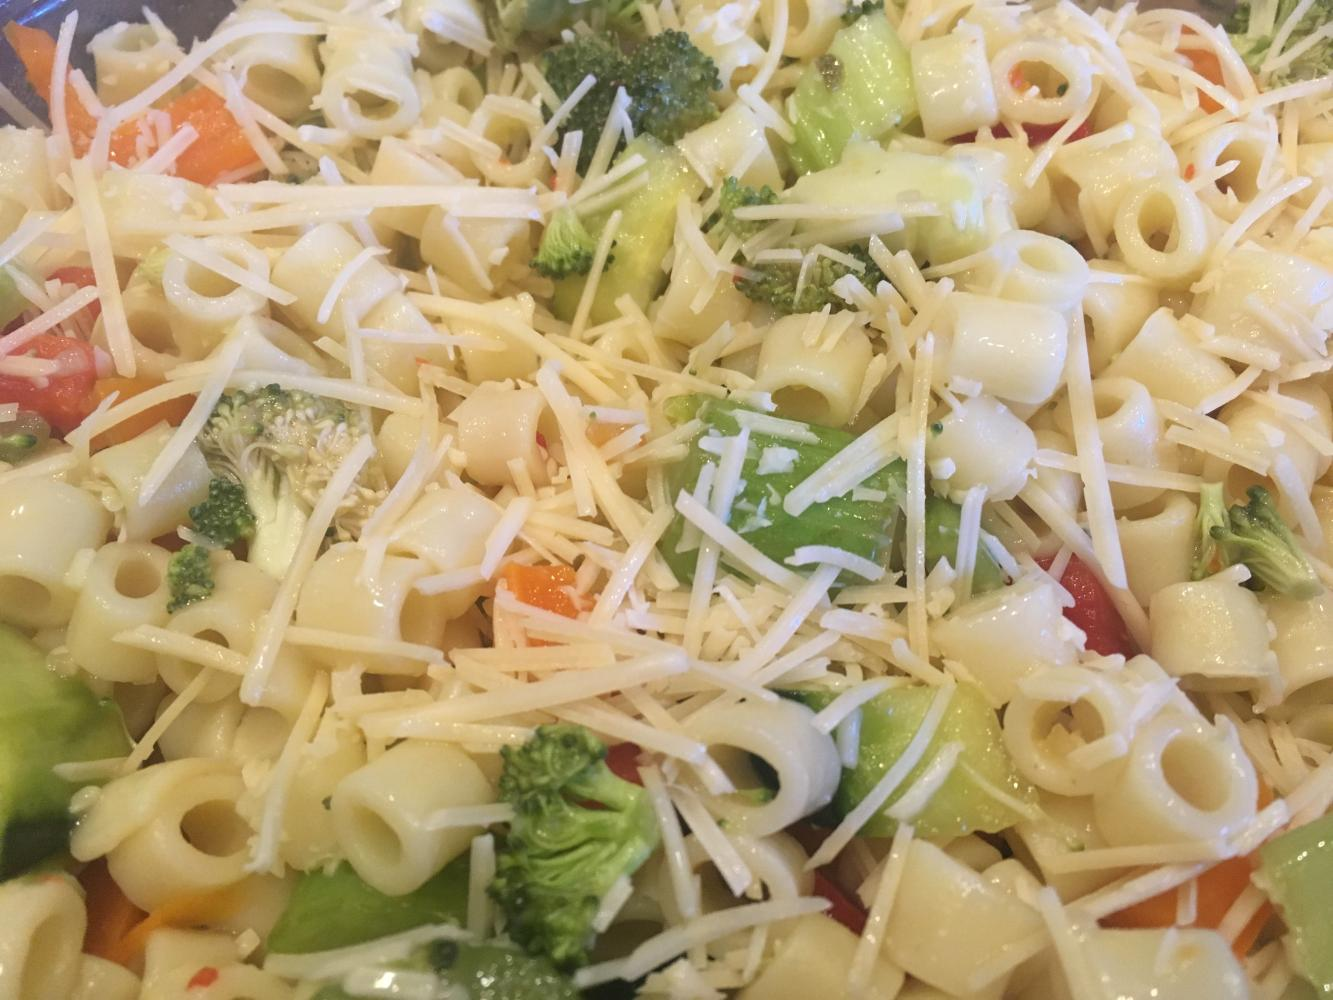 This pasta salad is perfect for summer.